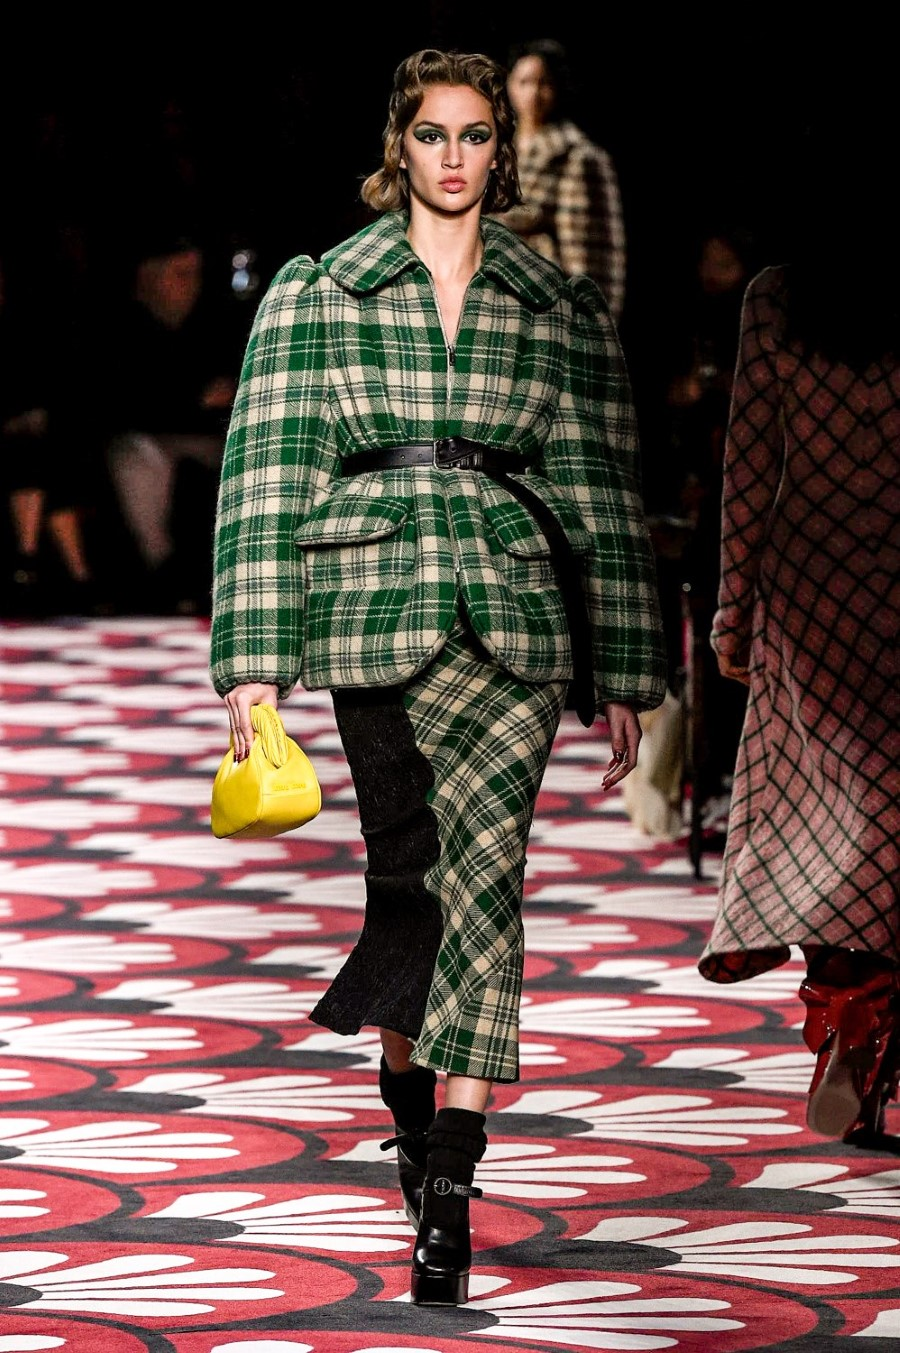 Miu Miu - Fall Winter 2020 - Paris Fashion Week